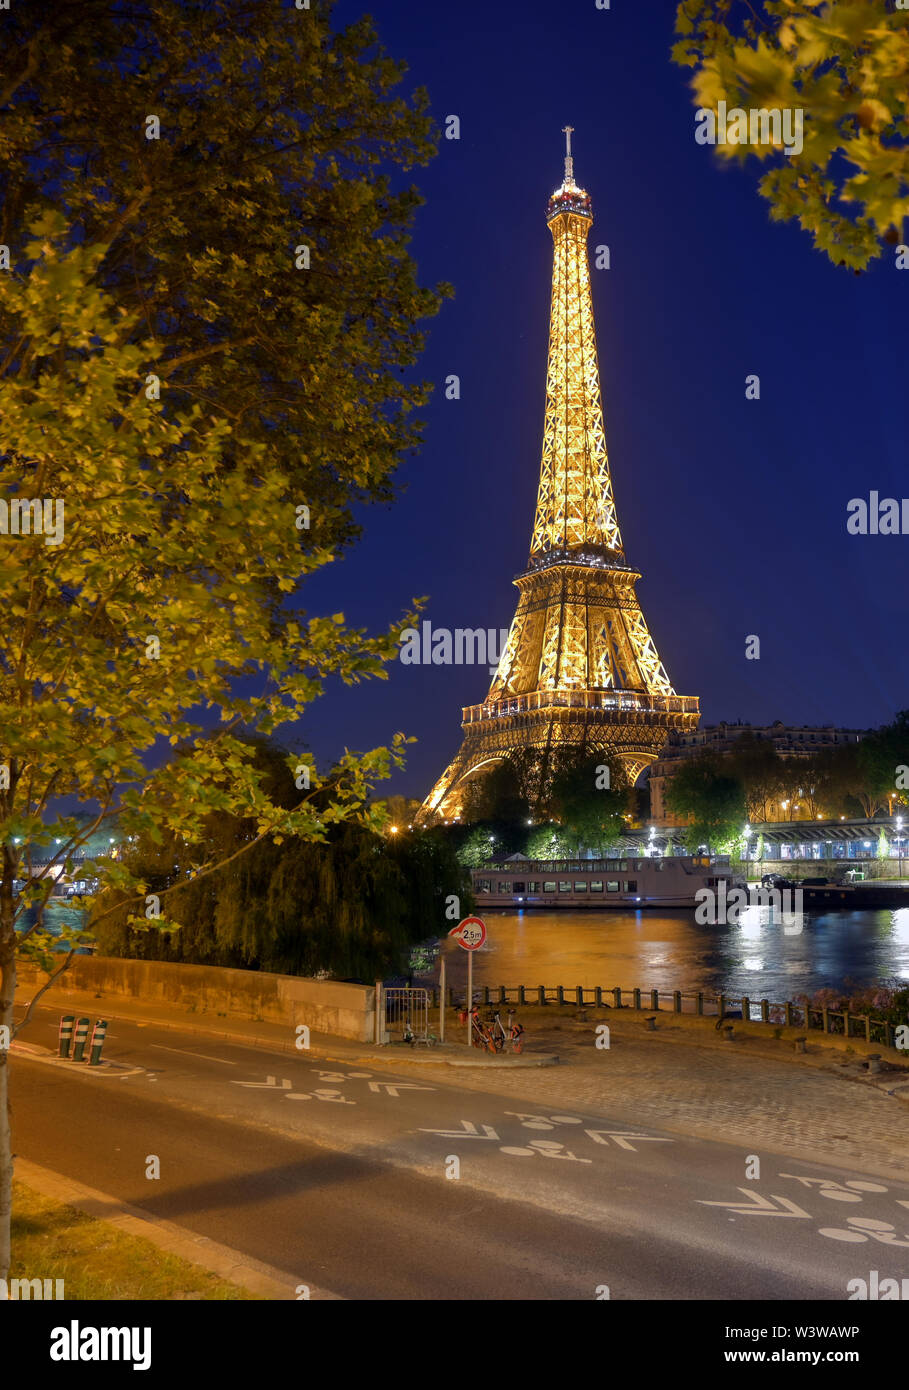 Paris, France - April 20, 2019 - A view of the Eiffel Tower at night across the River Seine in Paris, France. Stock Photo